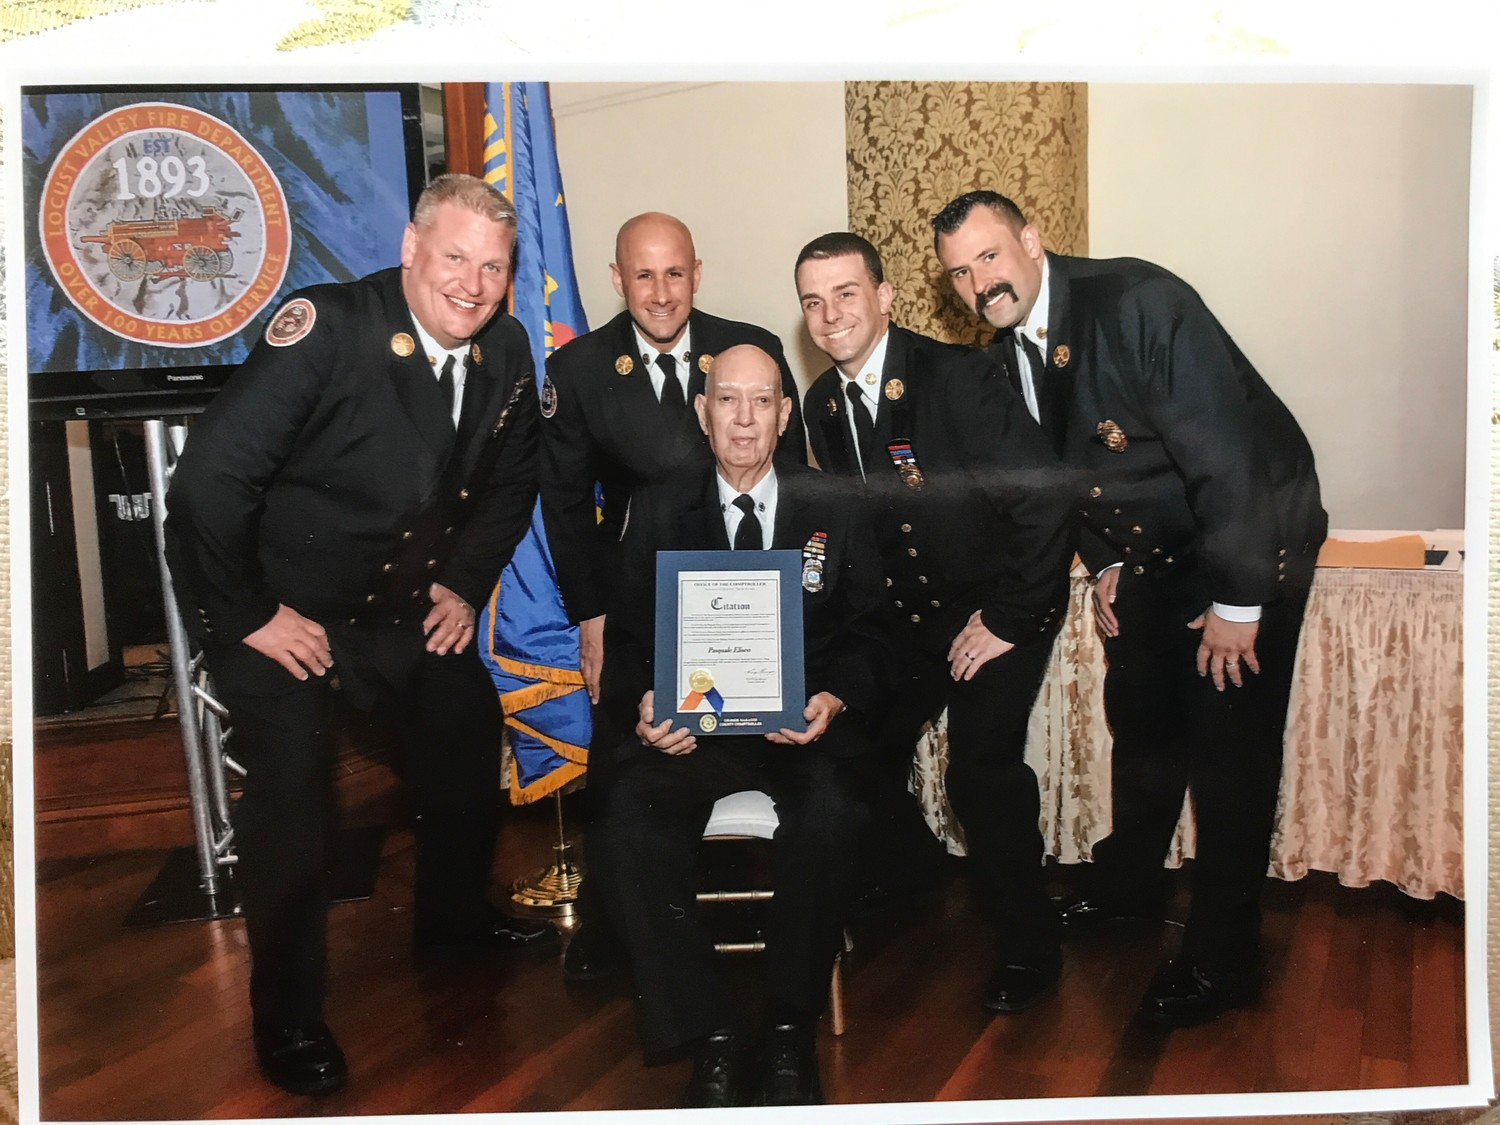 Chiefs of the LVFD congratulated Pat Eliseo, center, for 66 years of service at the Metropolitan in Glen Cove, above.